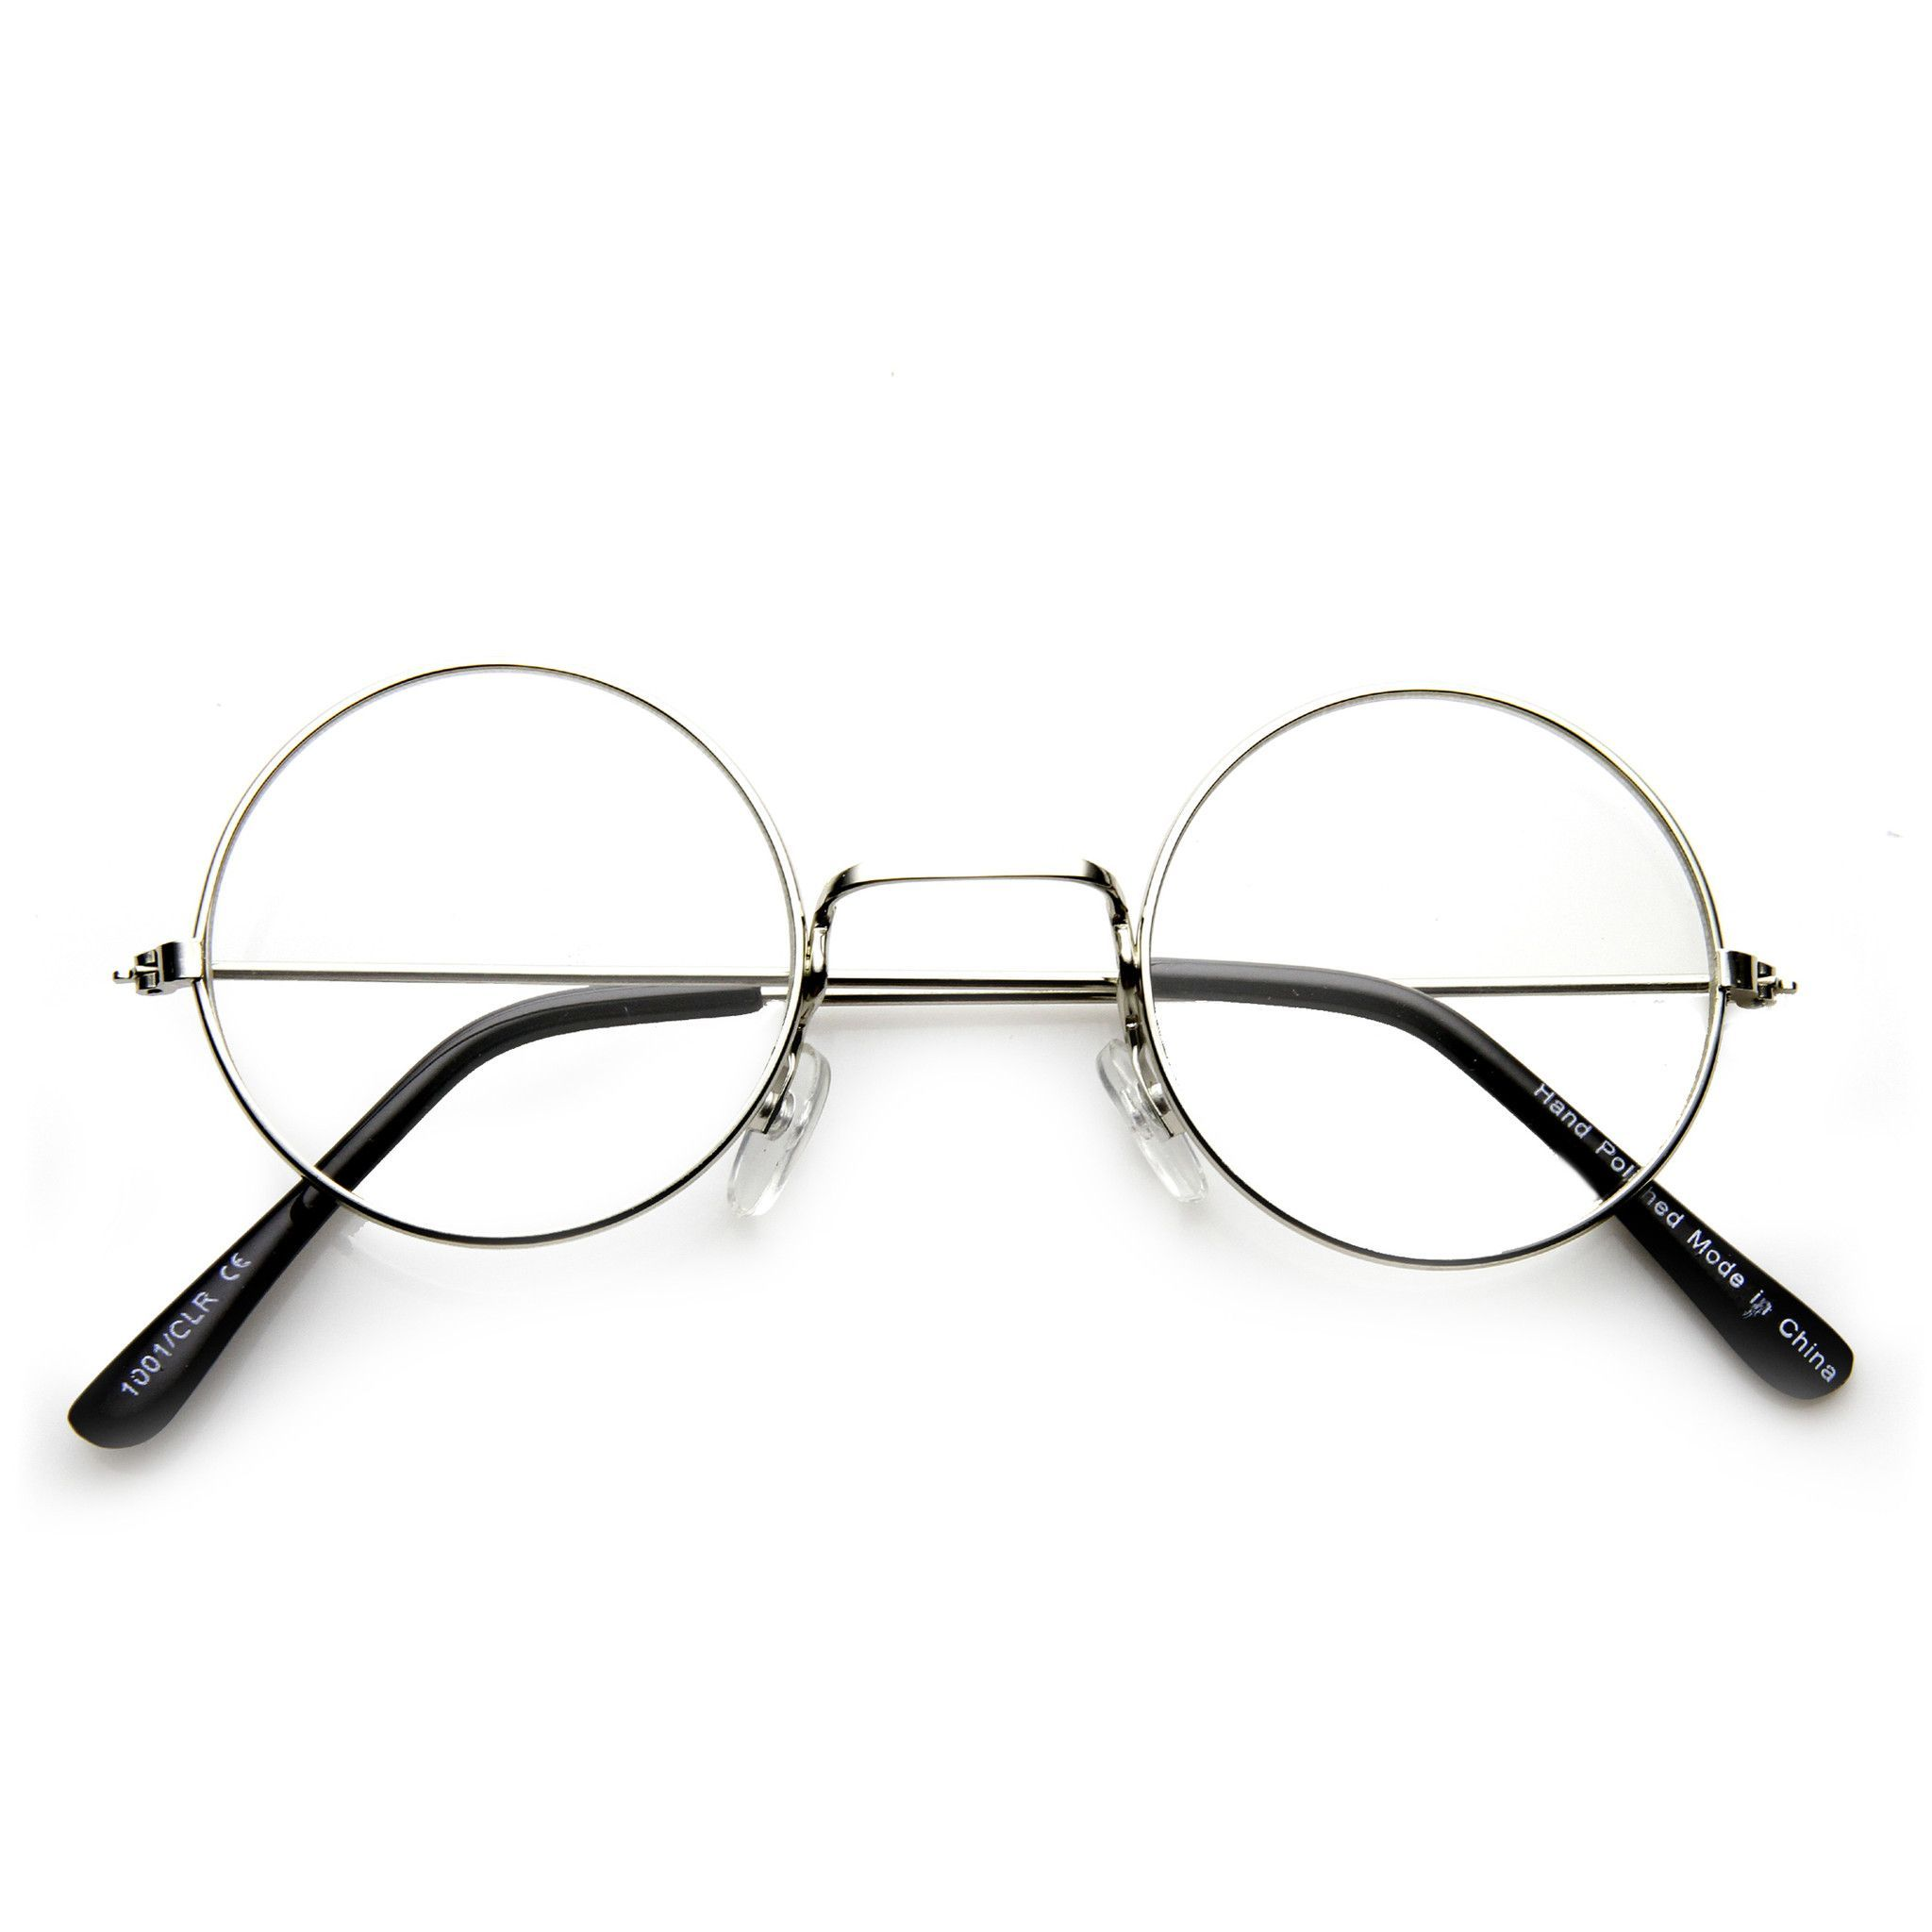 215fc835cb3 Vintage Inspired Round Metal Frame Clear Lens Glasses - zeroUV